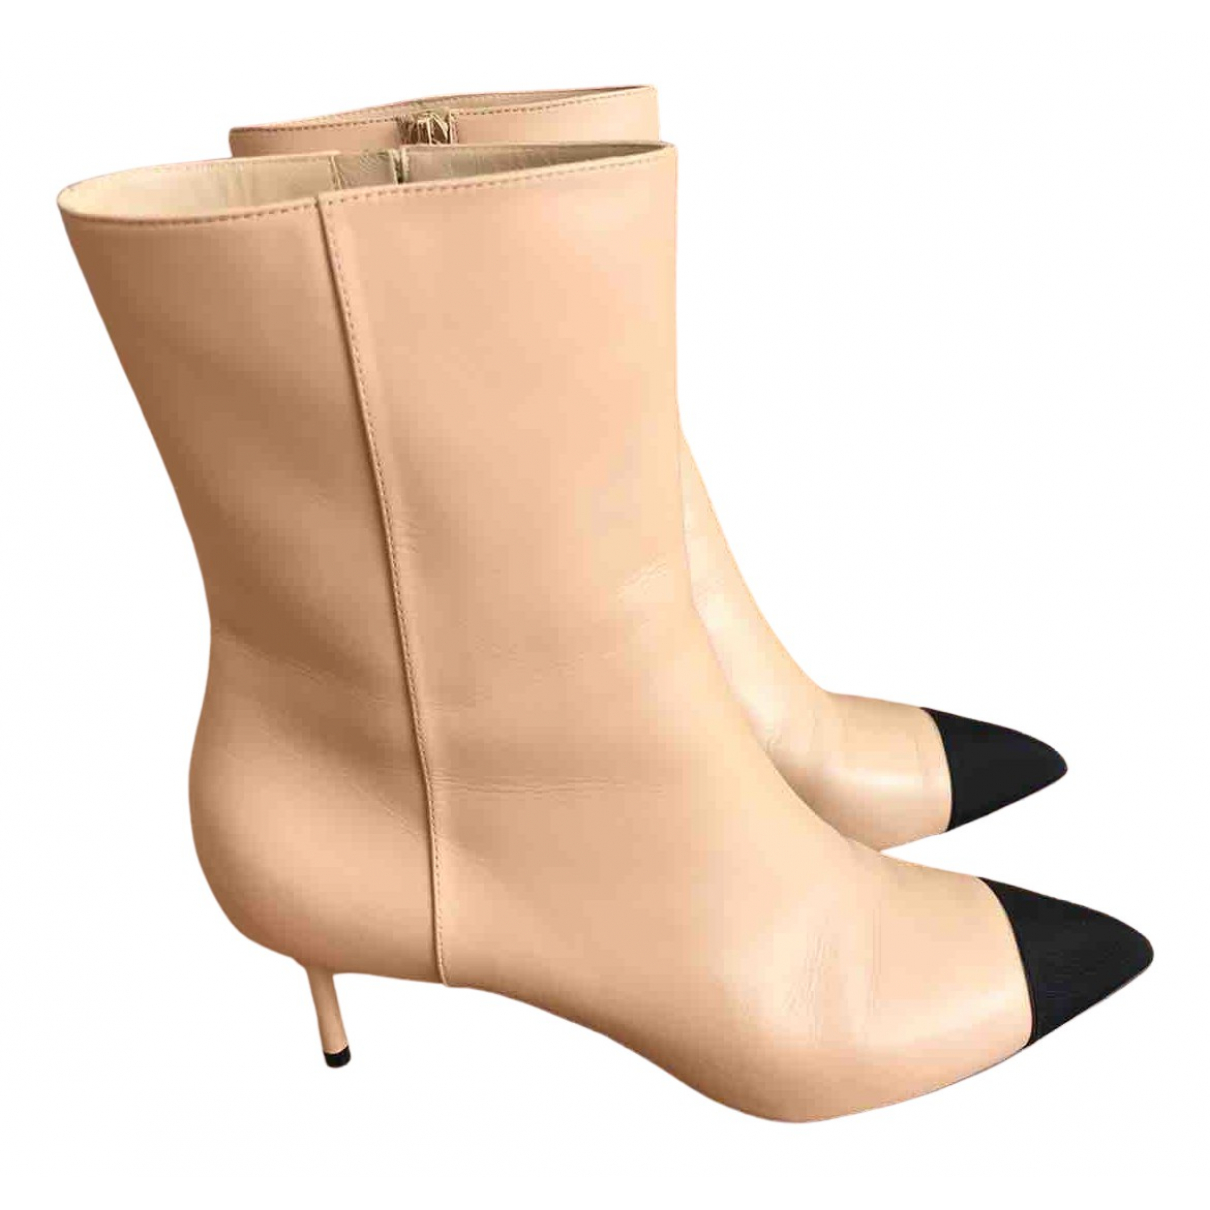 Chanel \N Beige Leather Ankle boots for Women 40.5 EU